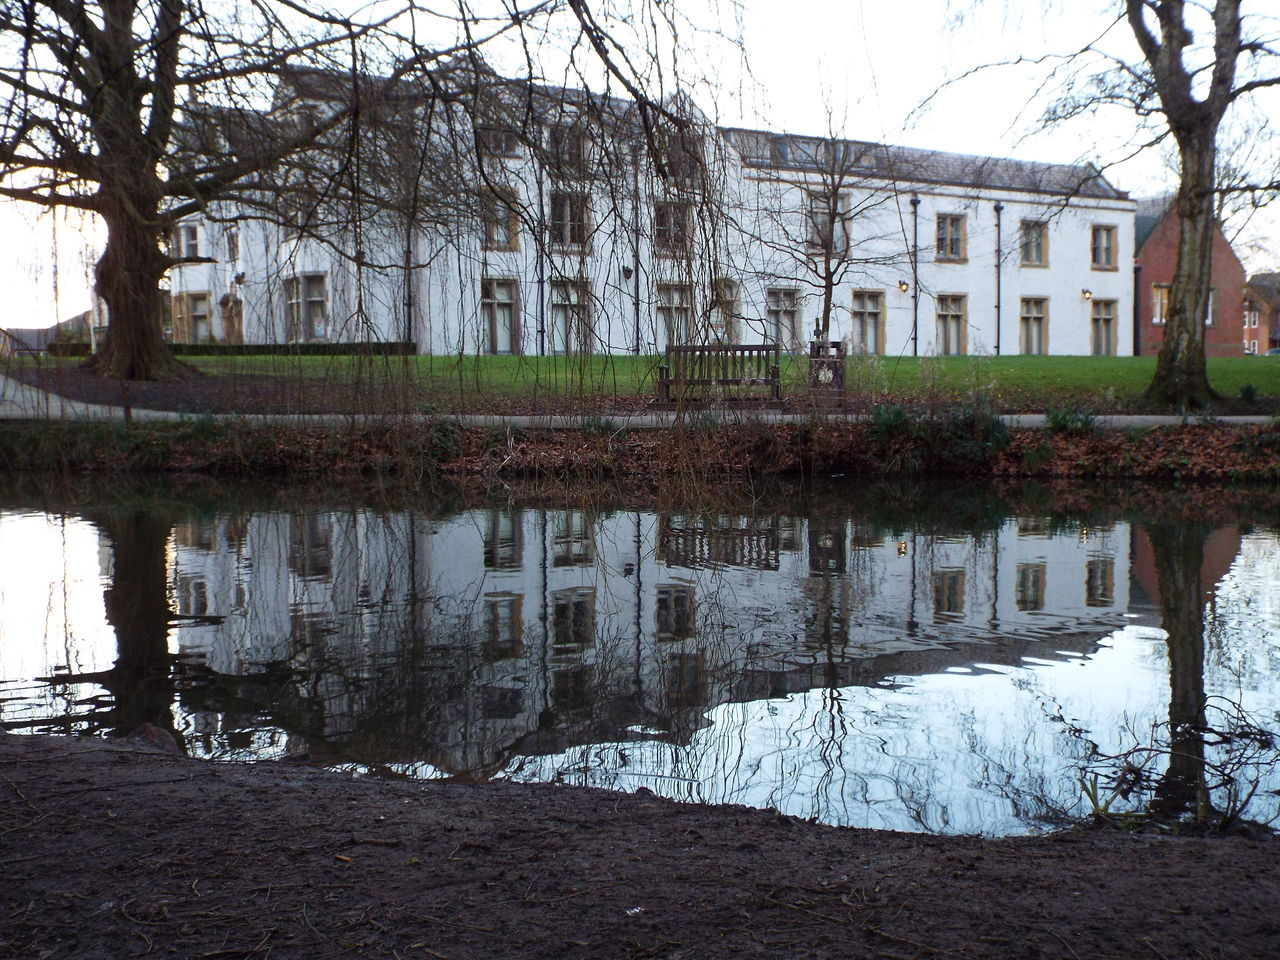 architecture, water, bare tree, reflection, built structure, tree, lake, no people, building exterior, outdoors, nature, grass, day, sky